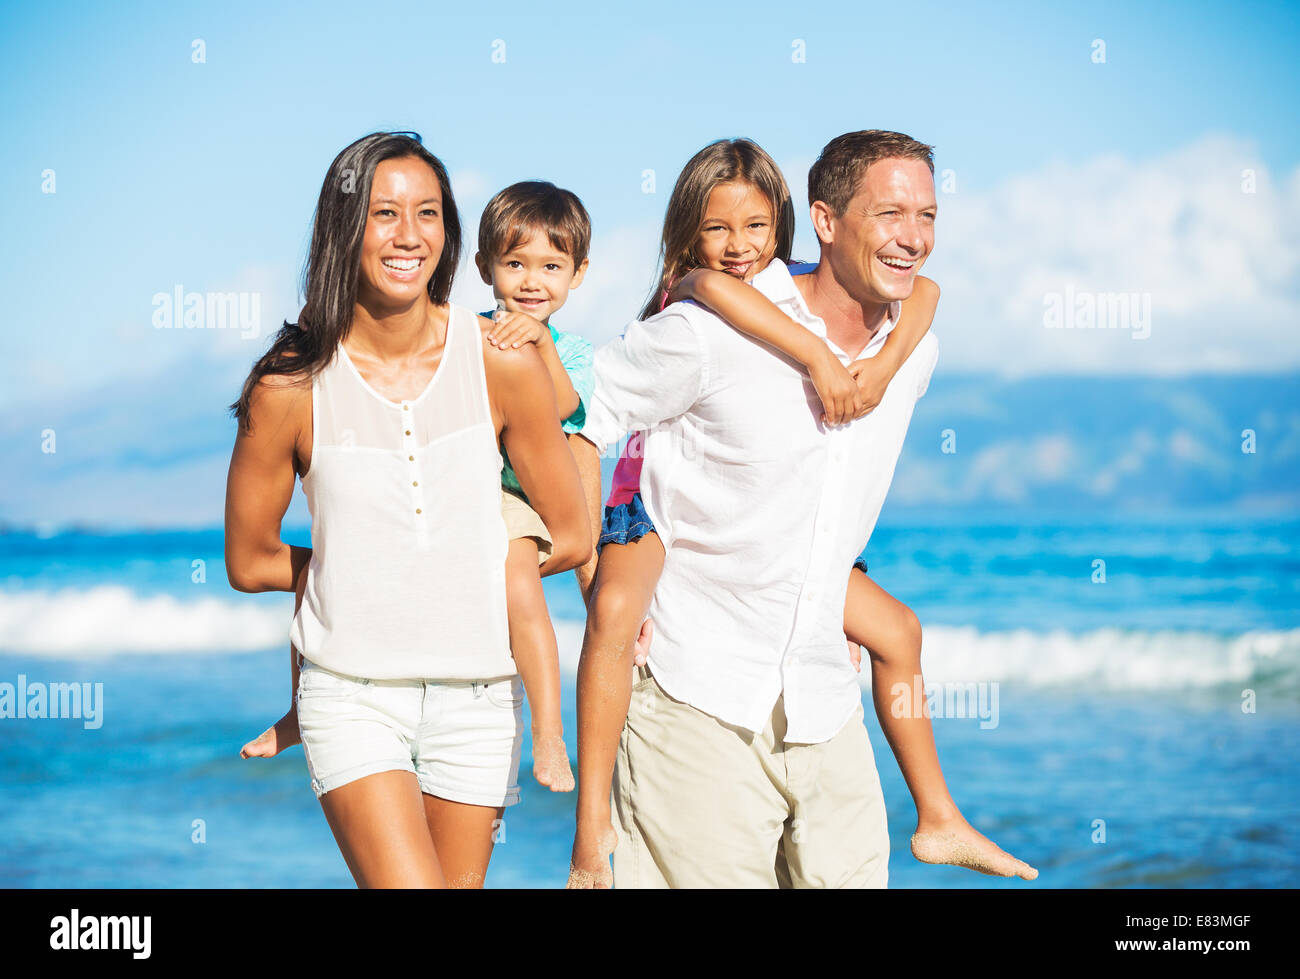 Happy Portrait of Mixed Race Family on the Beach - Stock Image